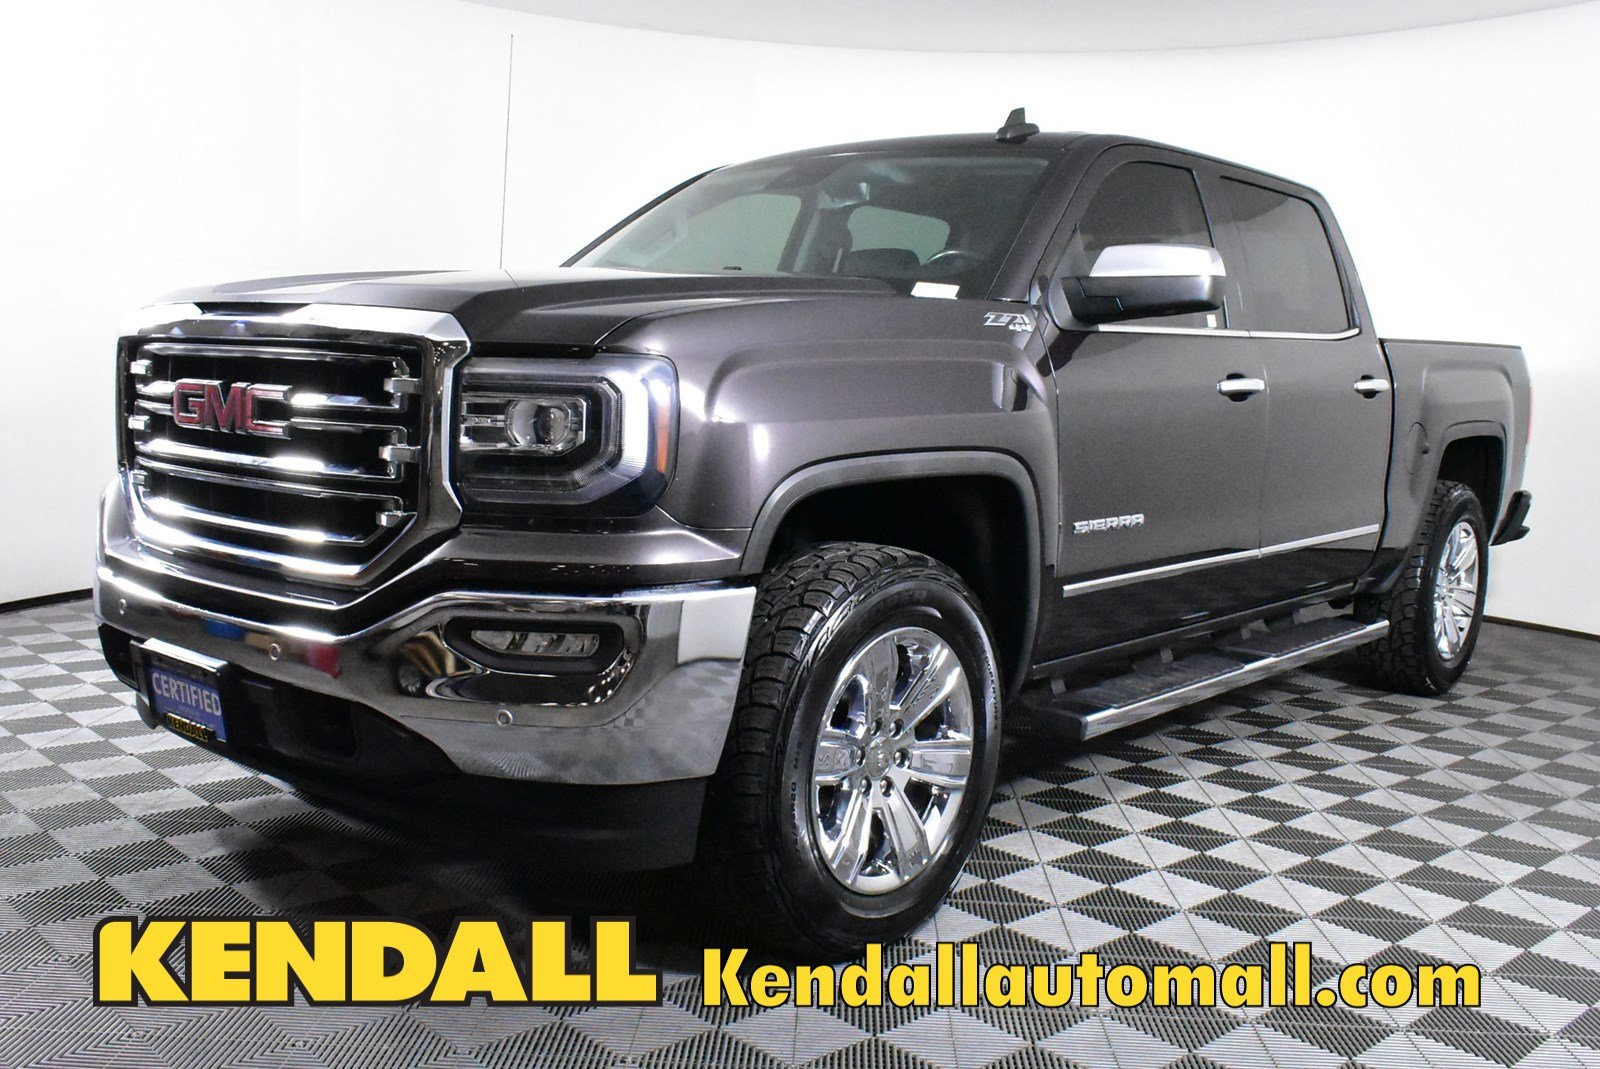 Certified Pre-Owned 2016 GMC Sierra 1500 SLT4WD